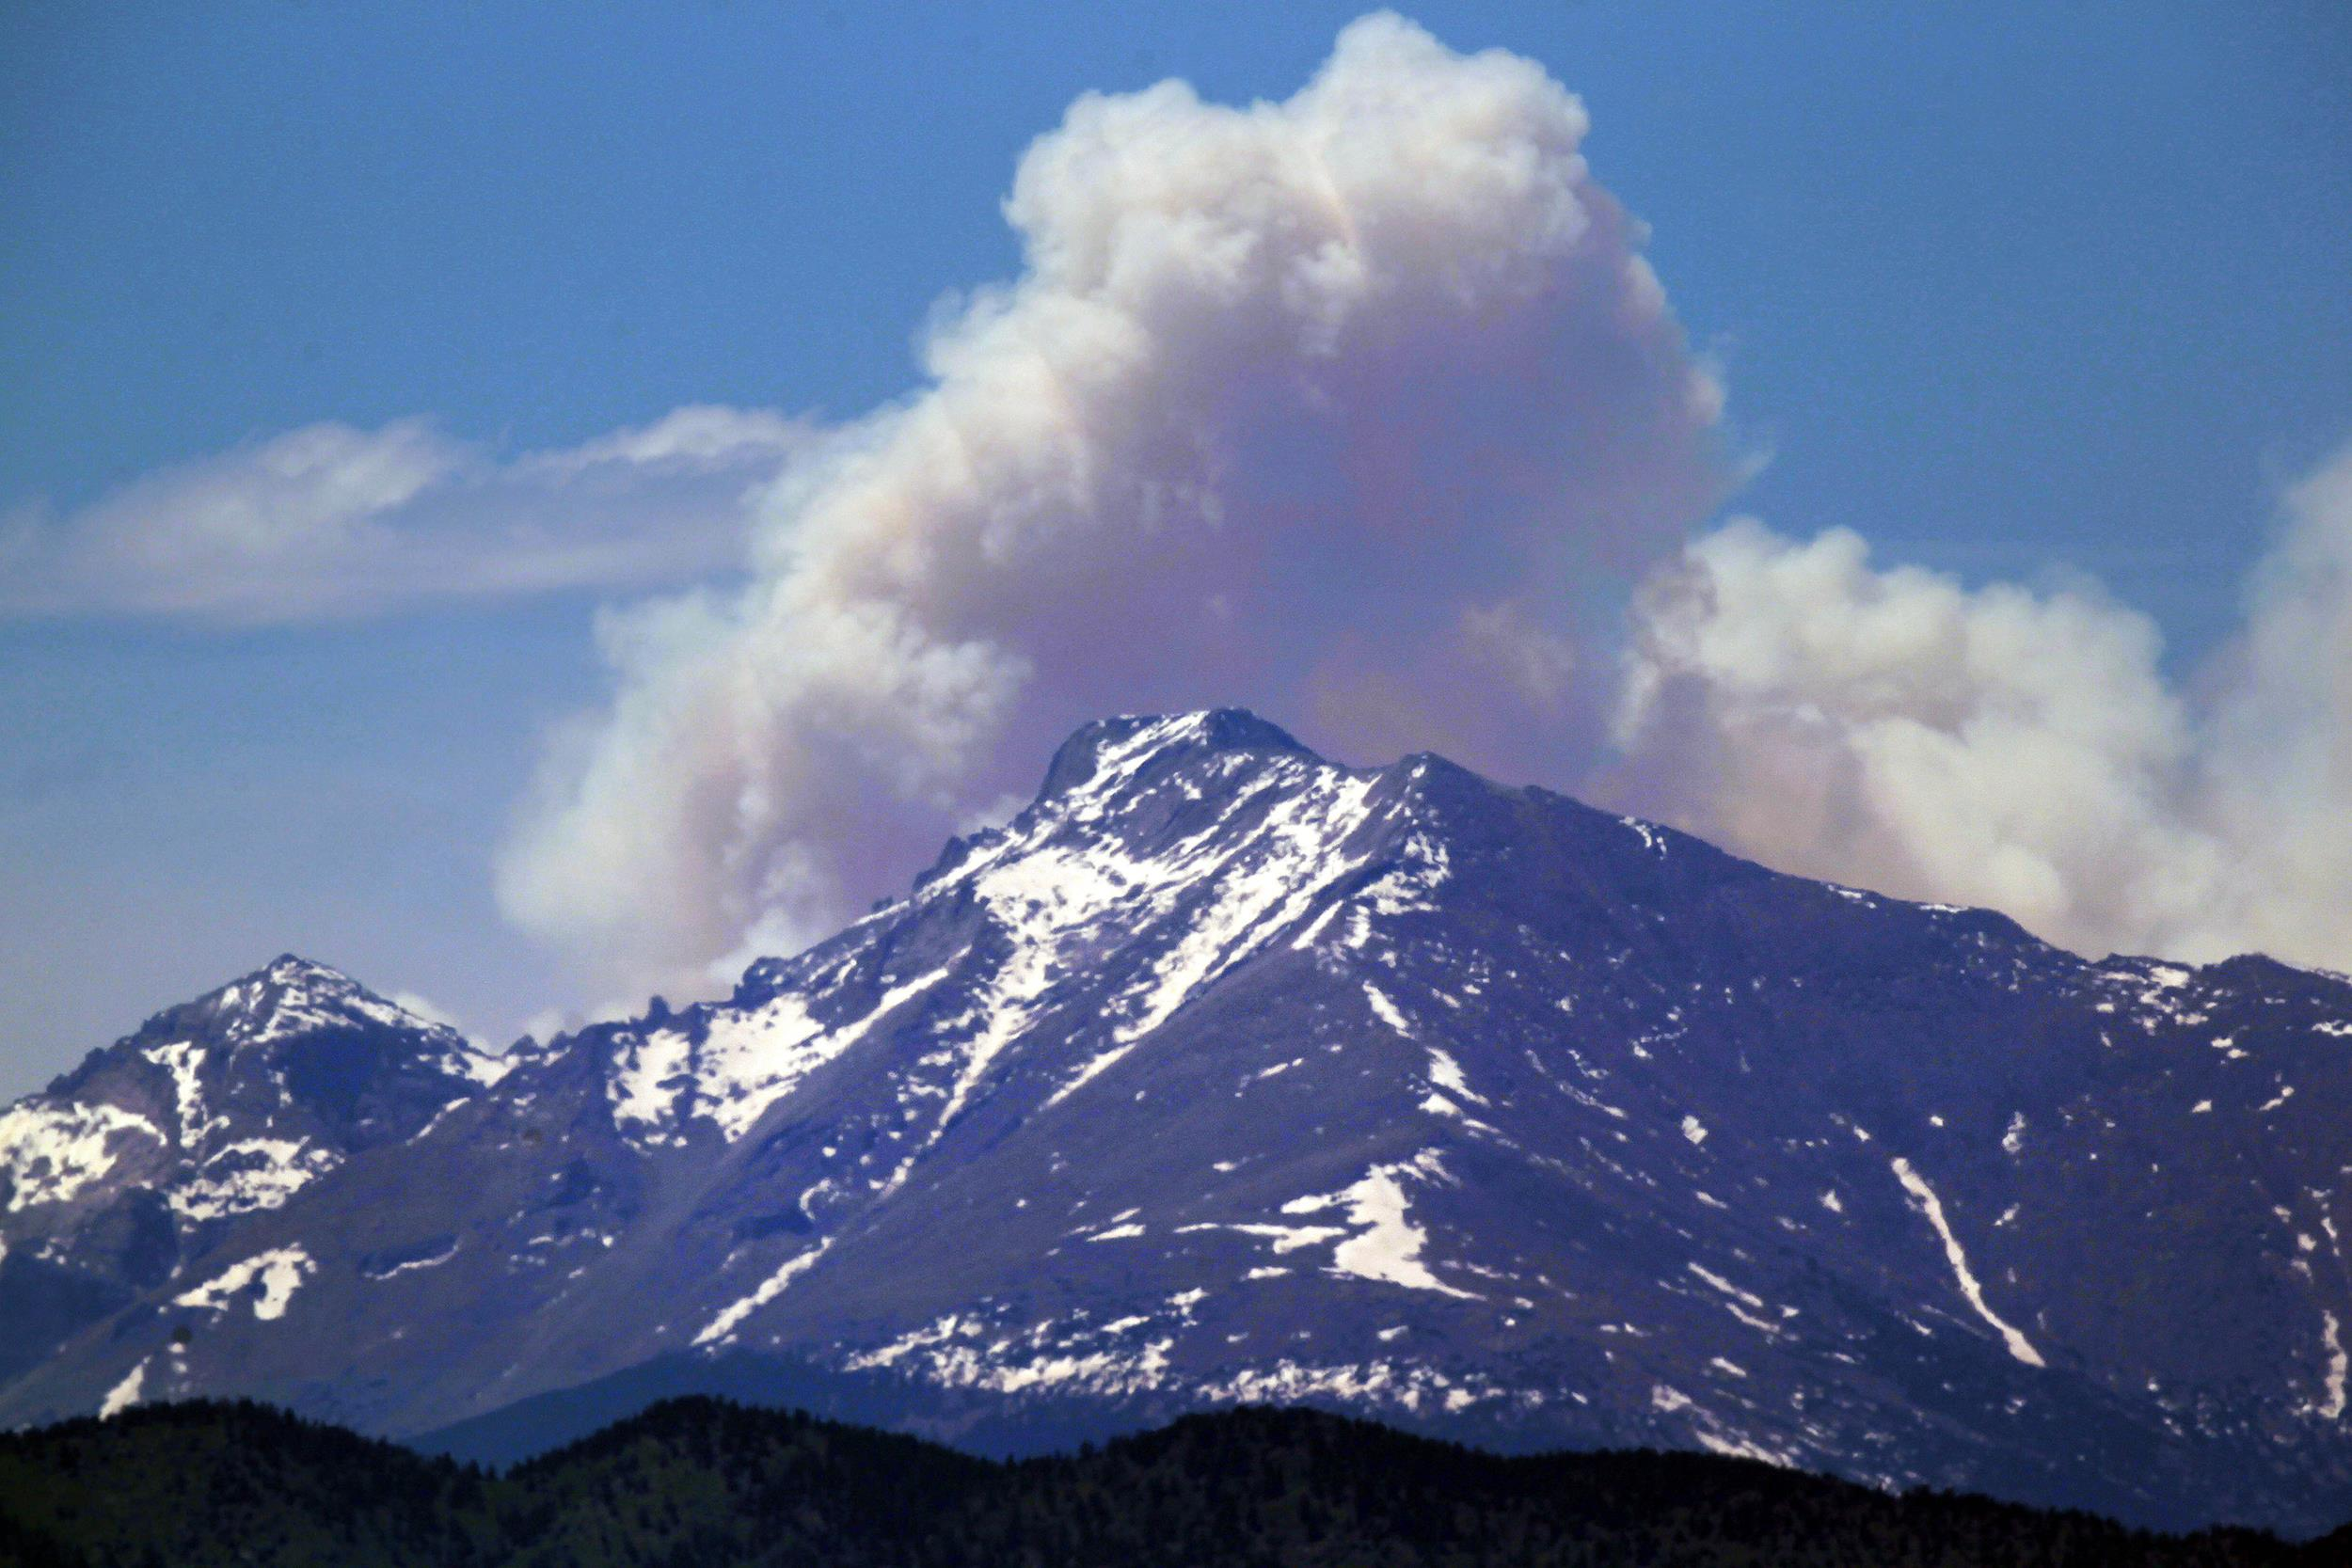 Image: A plume of smoke from the Big Meadows Fire in Rocky Mountain National Park rises above Longs Peak, as seen from just east of Boulder, Colo., on June 11